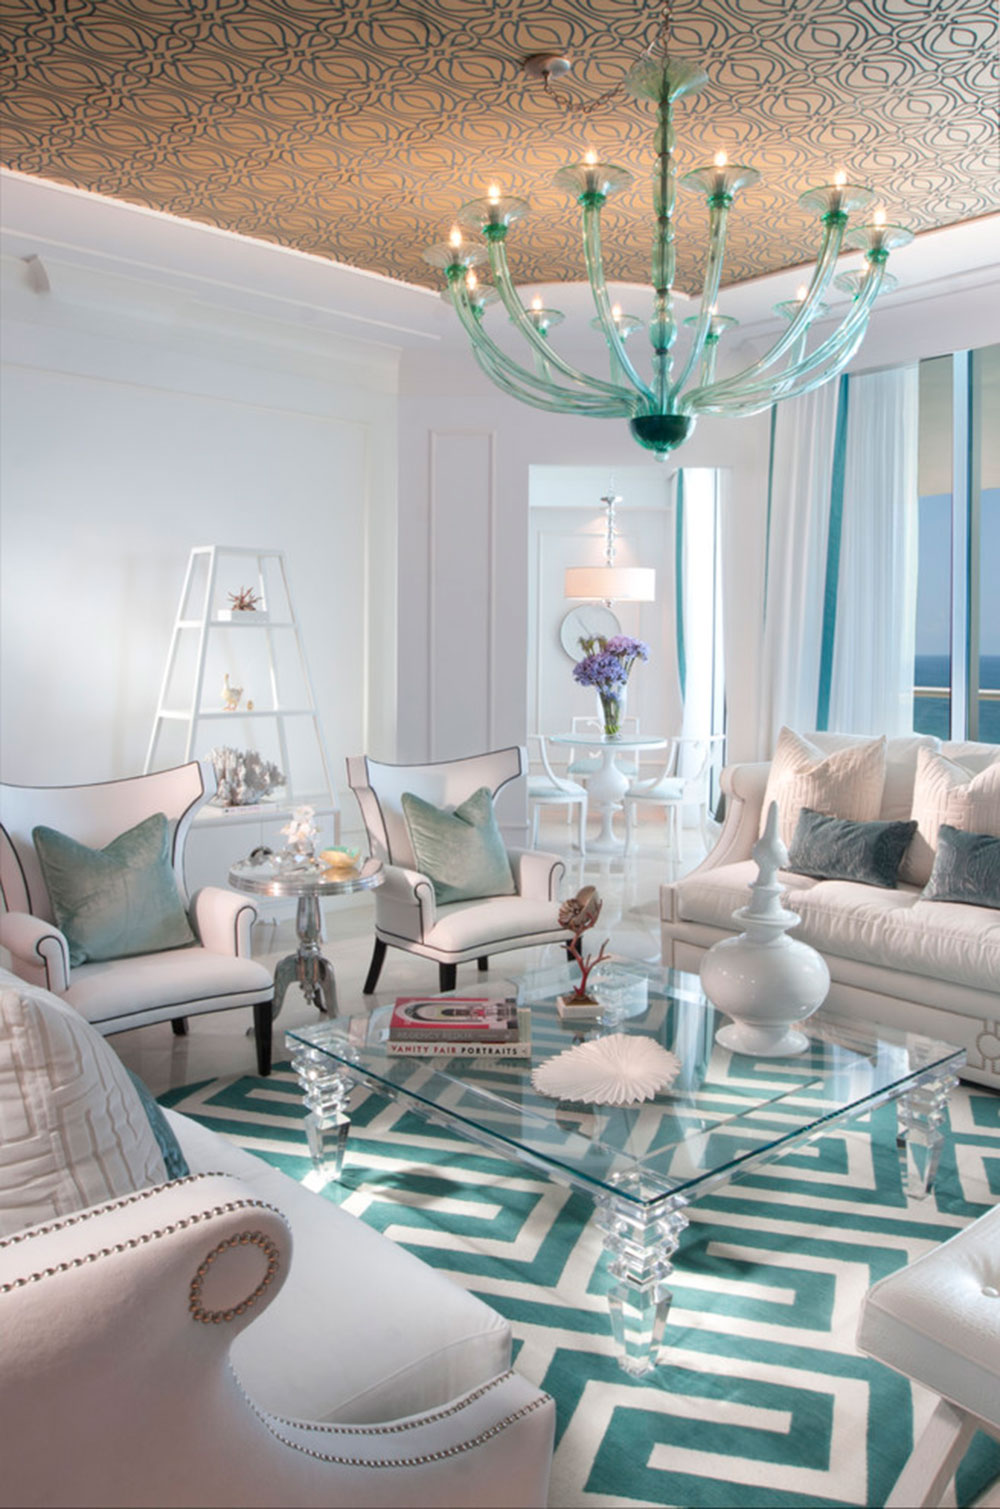 Turquoise-interior-design-is-always-a-good-idea6 Turquoise-interior design is always a good idea